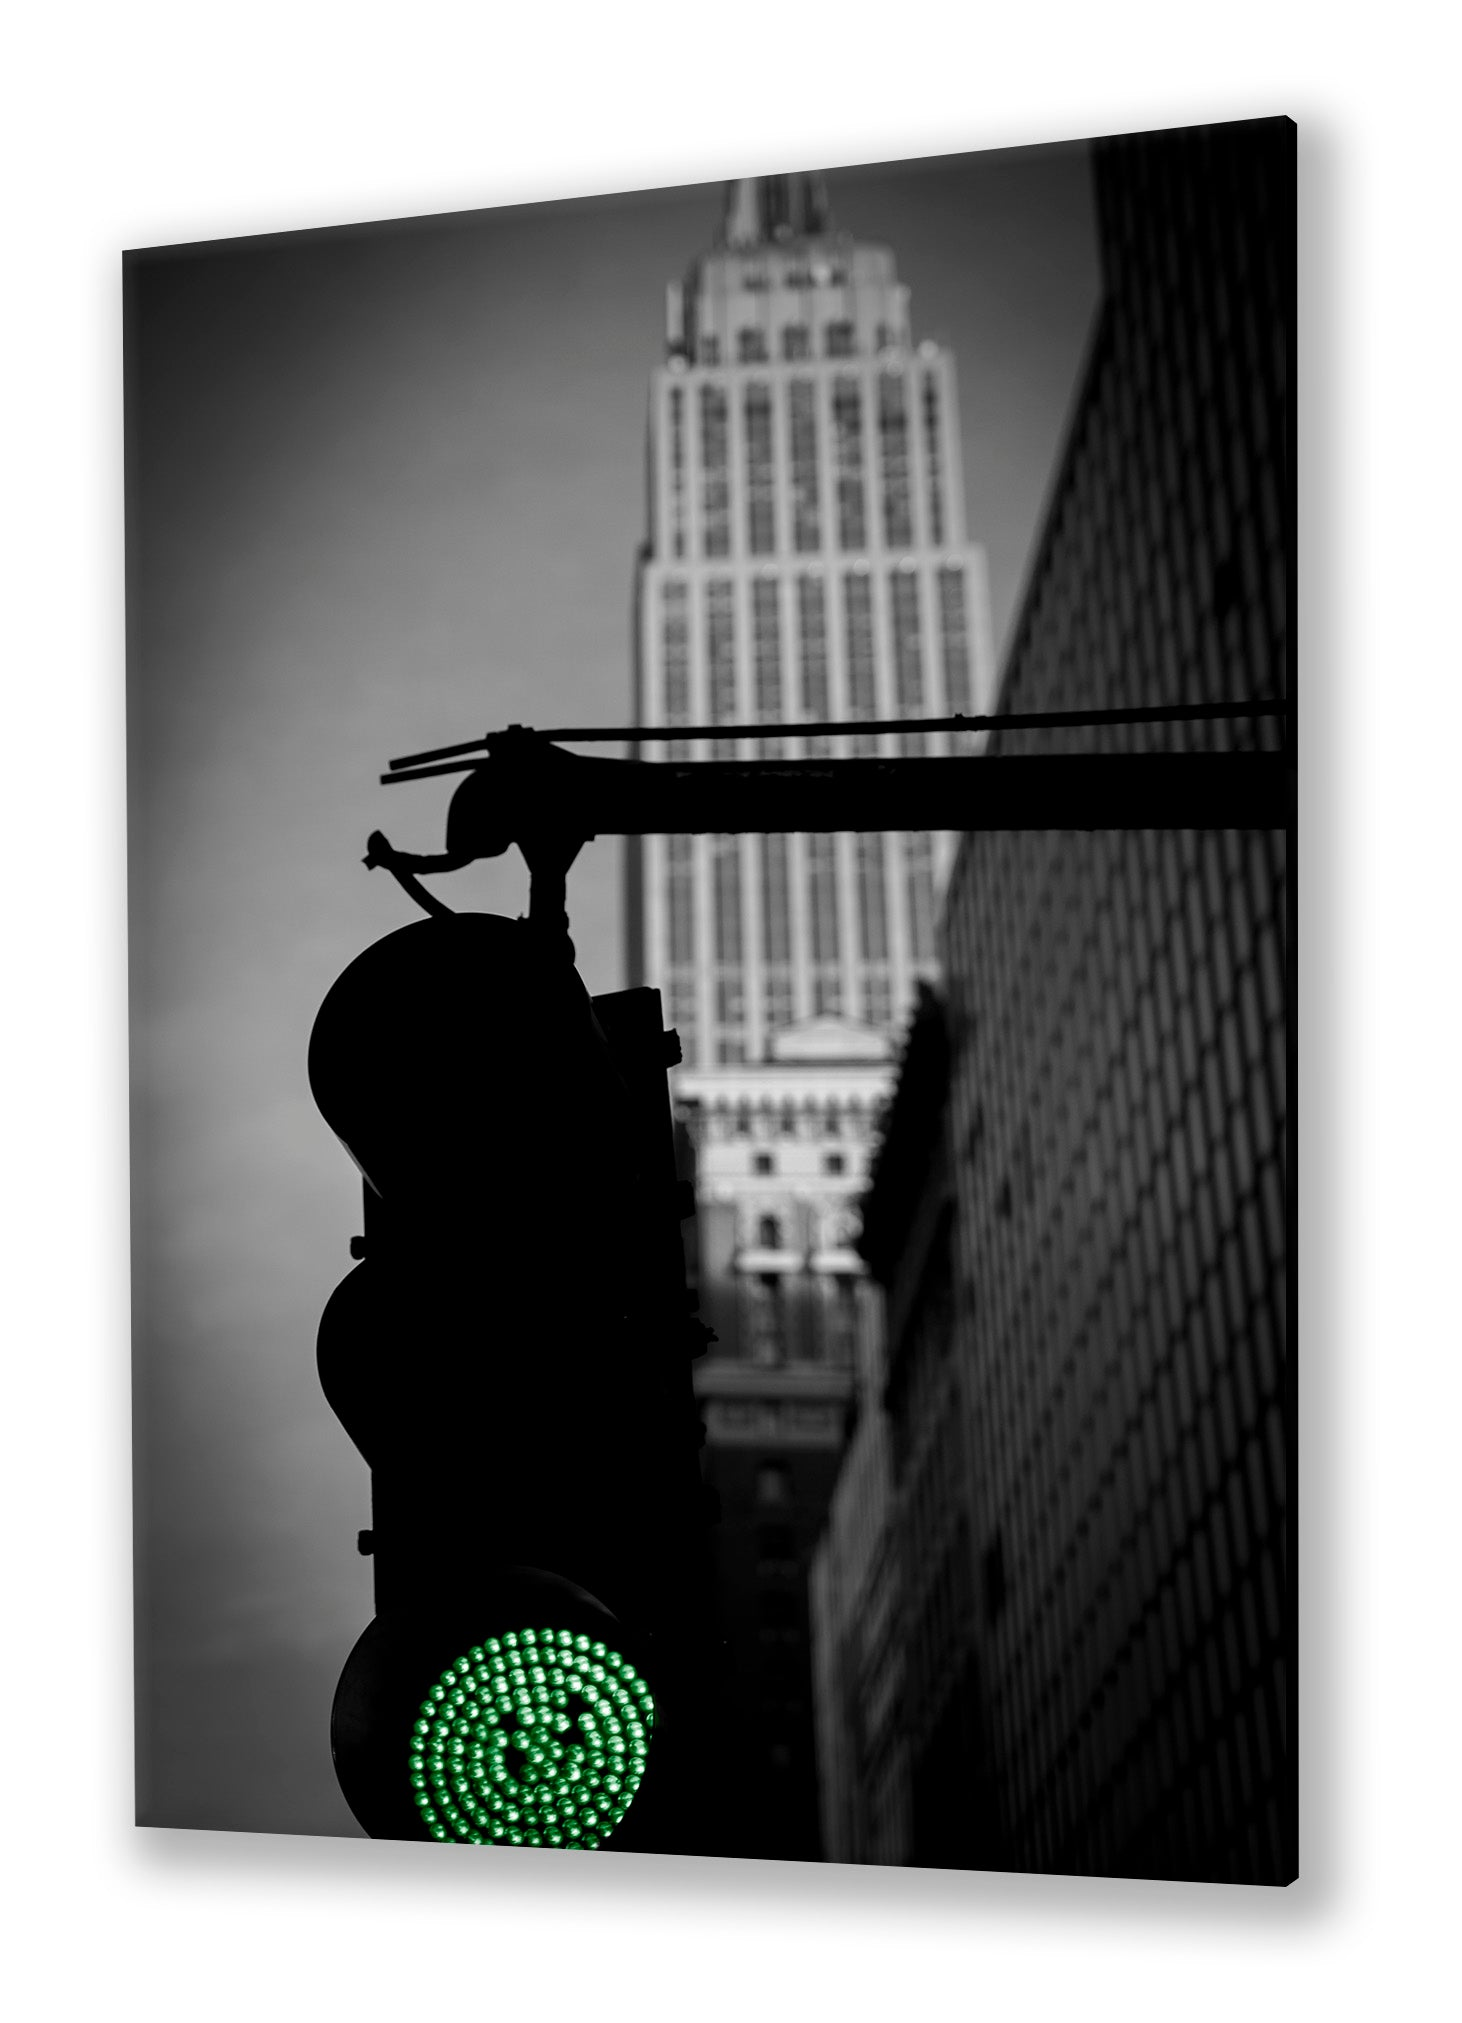 Traffic Light, New York City | Special edition Art Print on Aluminium